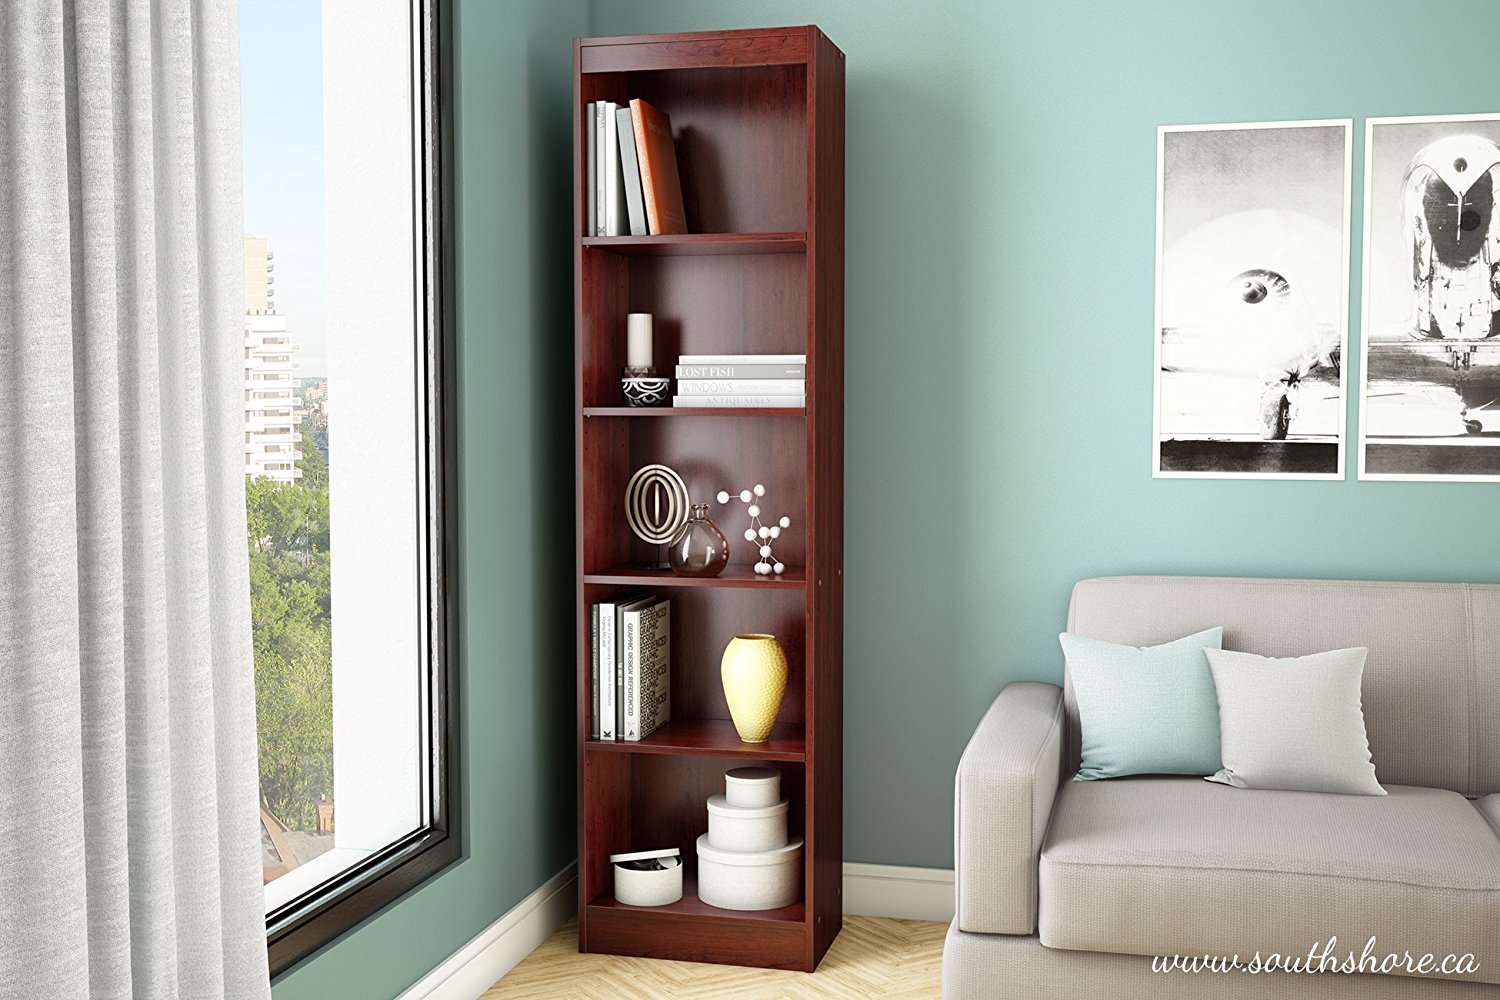 Details About South Shore Axess Collection 5 Shelf Narrow Bookcase In Royal Cherry 7246758